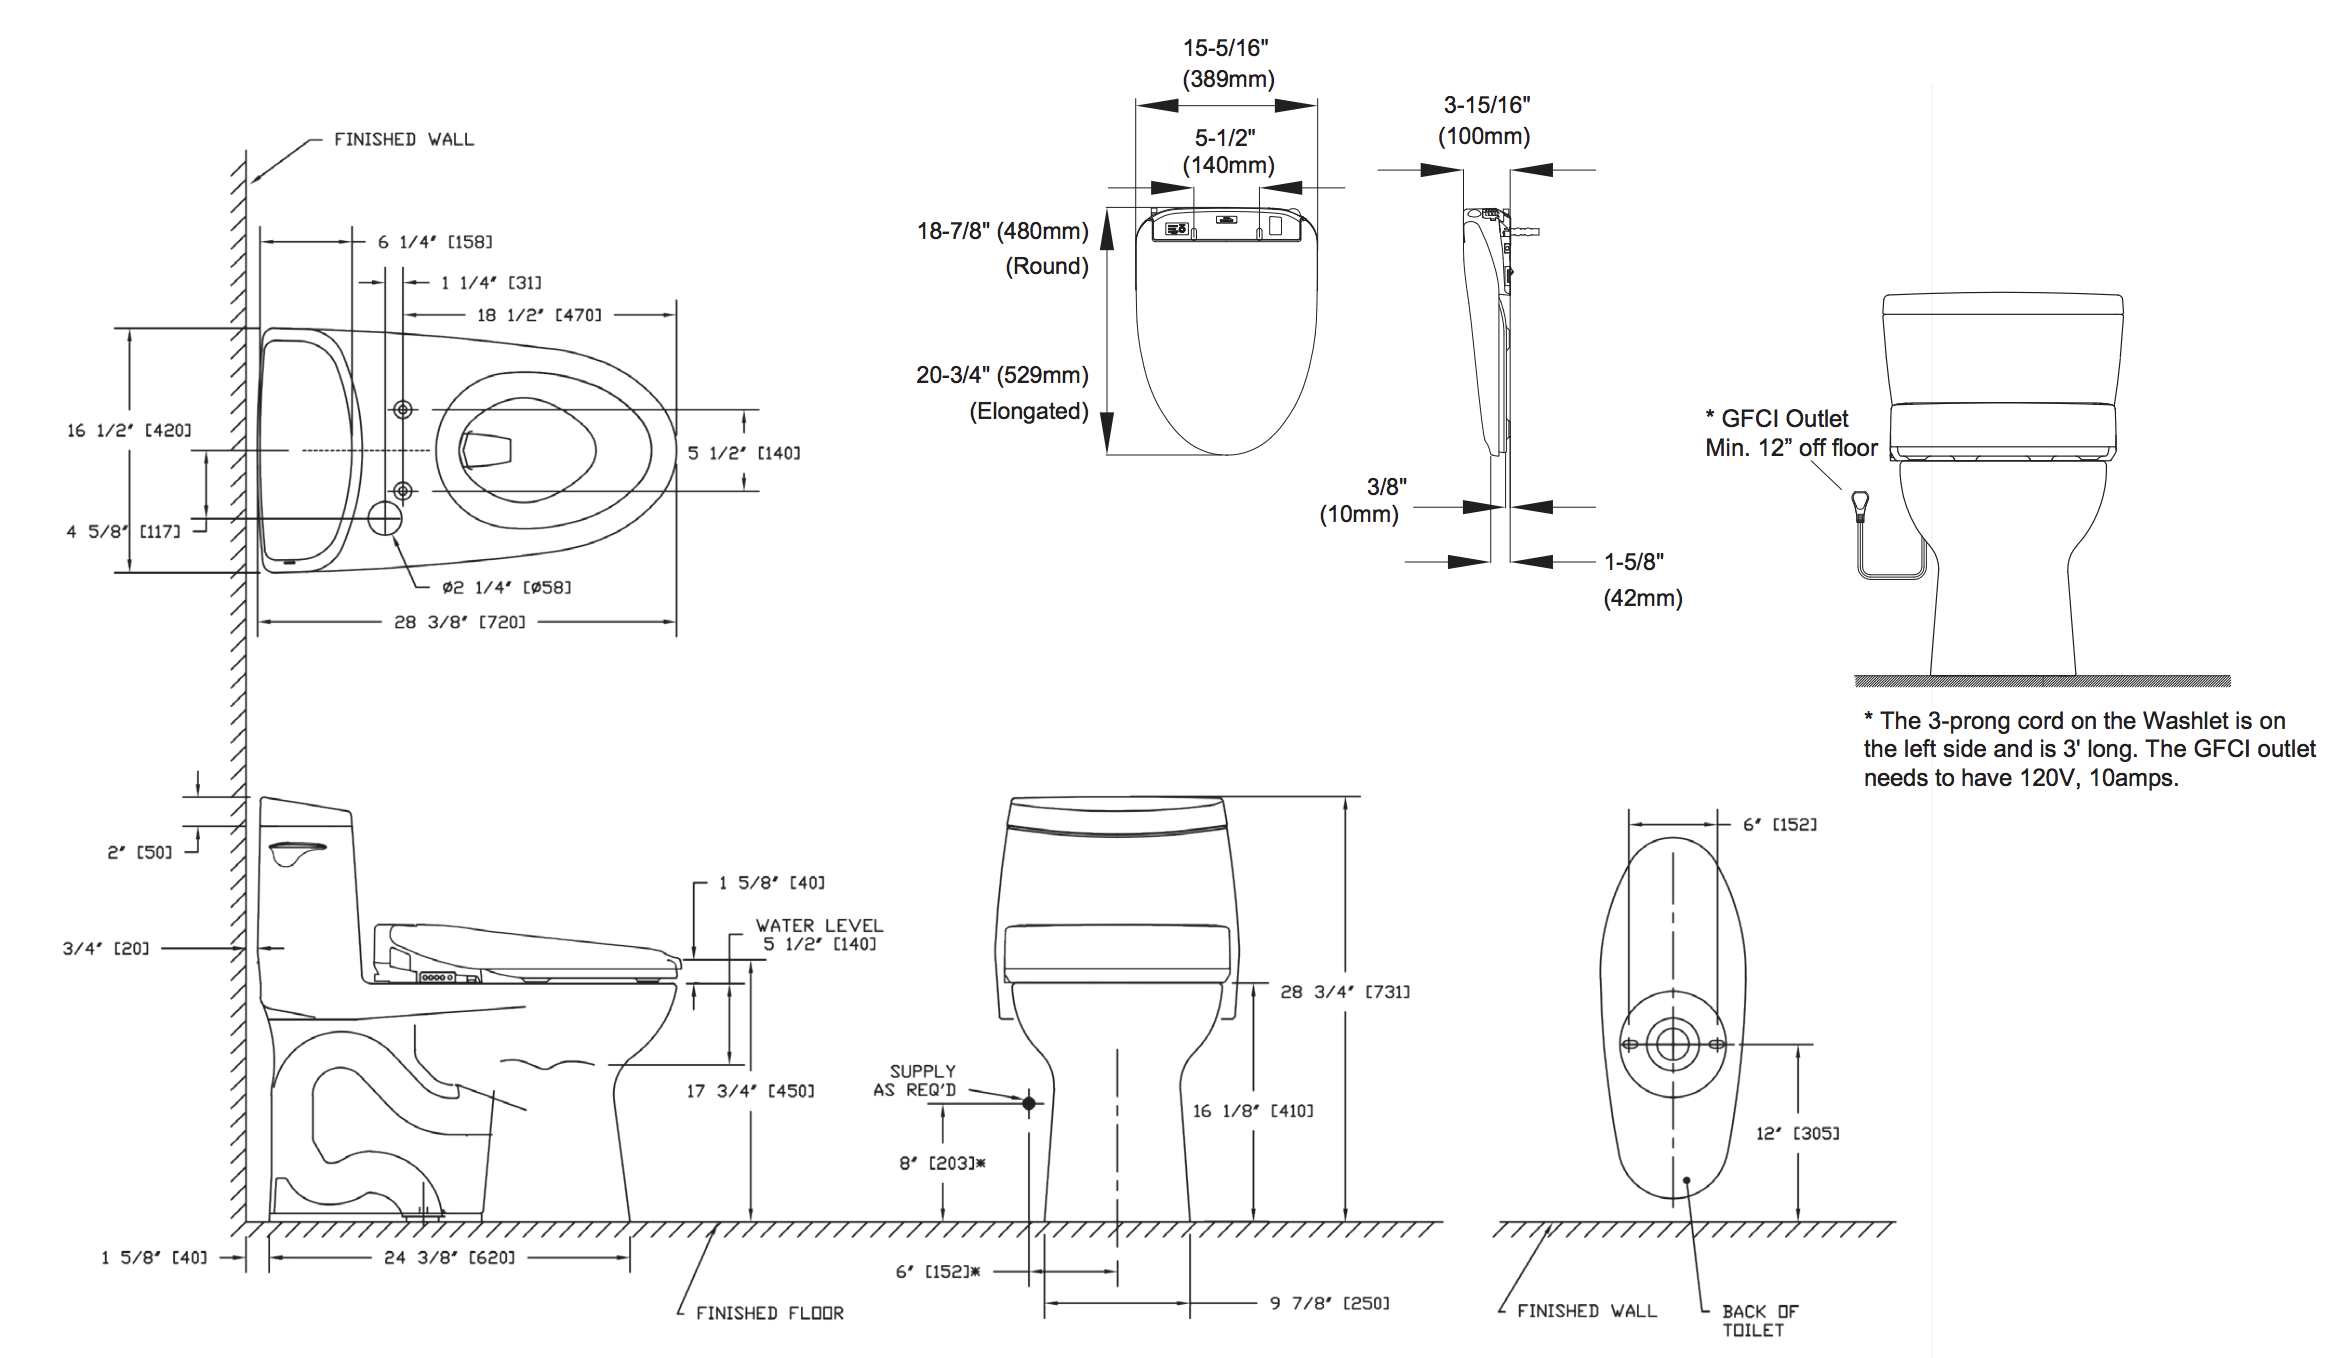 toto-ultramax-ii-washlet-s350e-one-piece-toilet-and-bidet-system-1.28-gpf-diagram.png